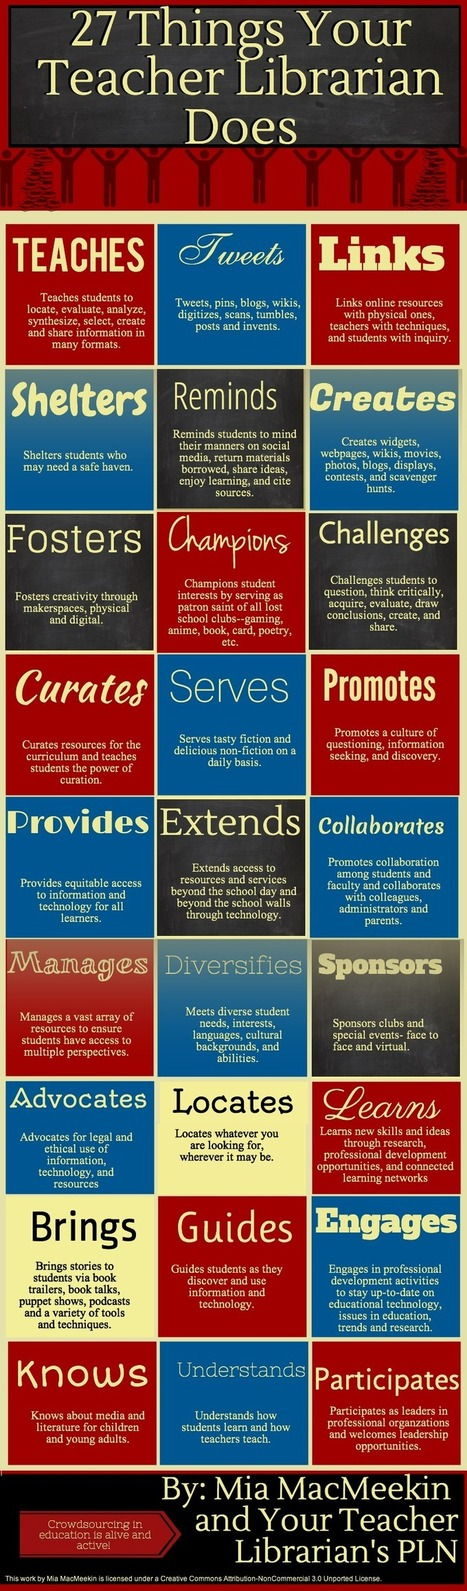 Educational Technology and Mobile Learning: Awesome Graphic on the 27 Things Teacher Librarians Do | ADP Center for Teacher Preparation & Learning Technologies | Scoop.it